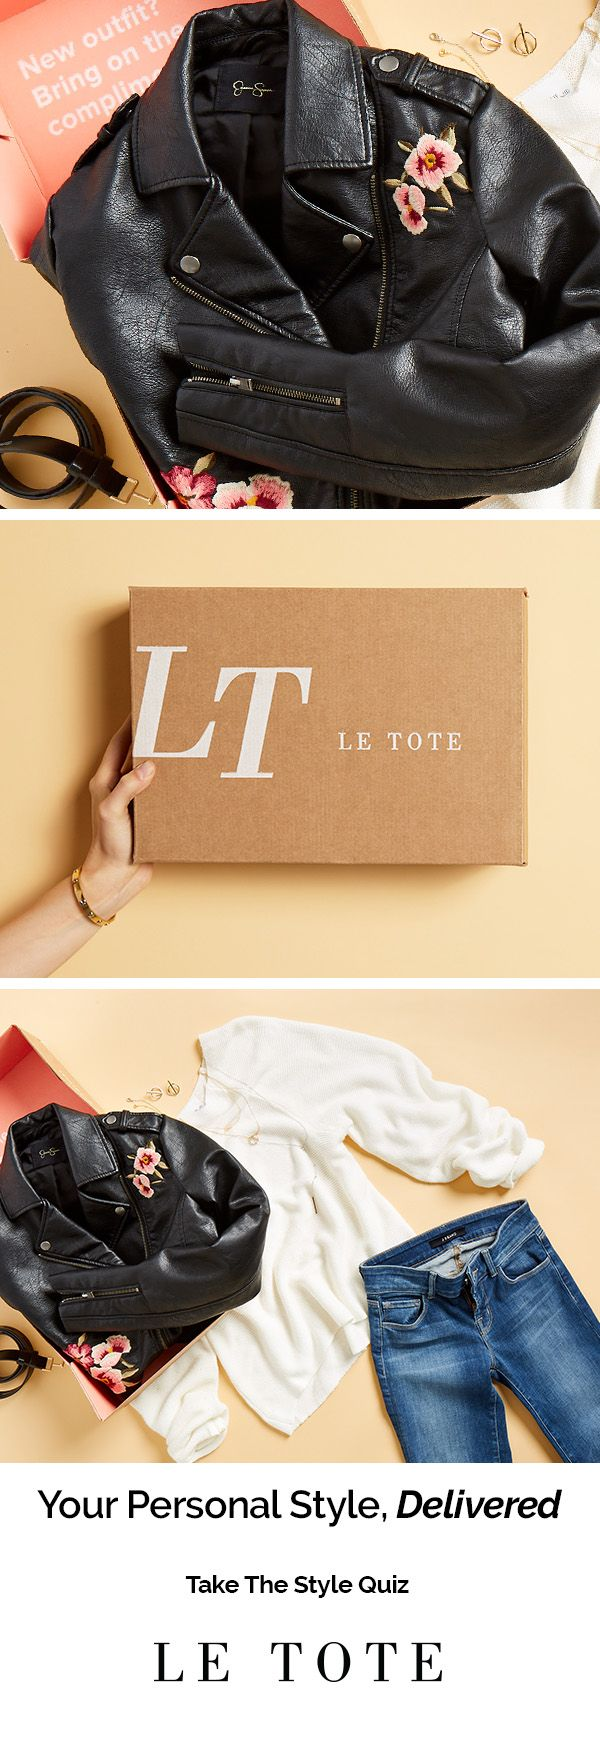 From timeless classics to the latest trends, whatever you need Le Tote has you covered. Take the Style Quiz and get your first tote delivered straight to your door. Own your style, rent your fashion with Le Tote.